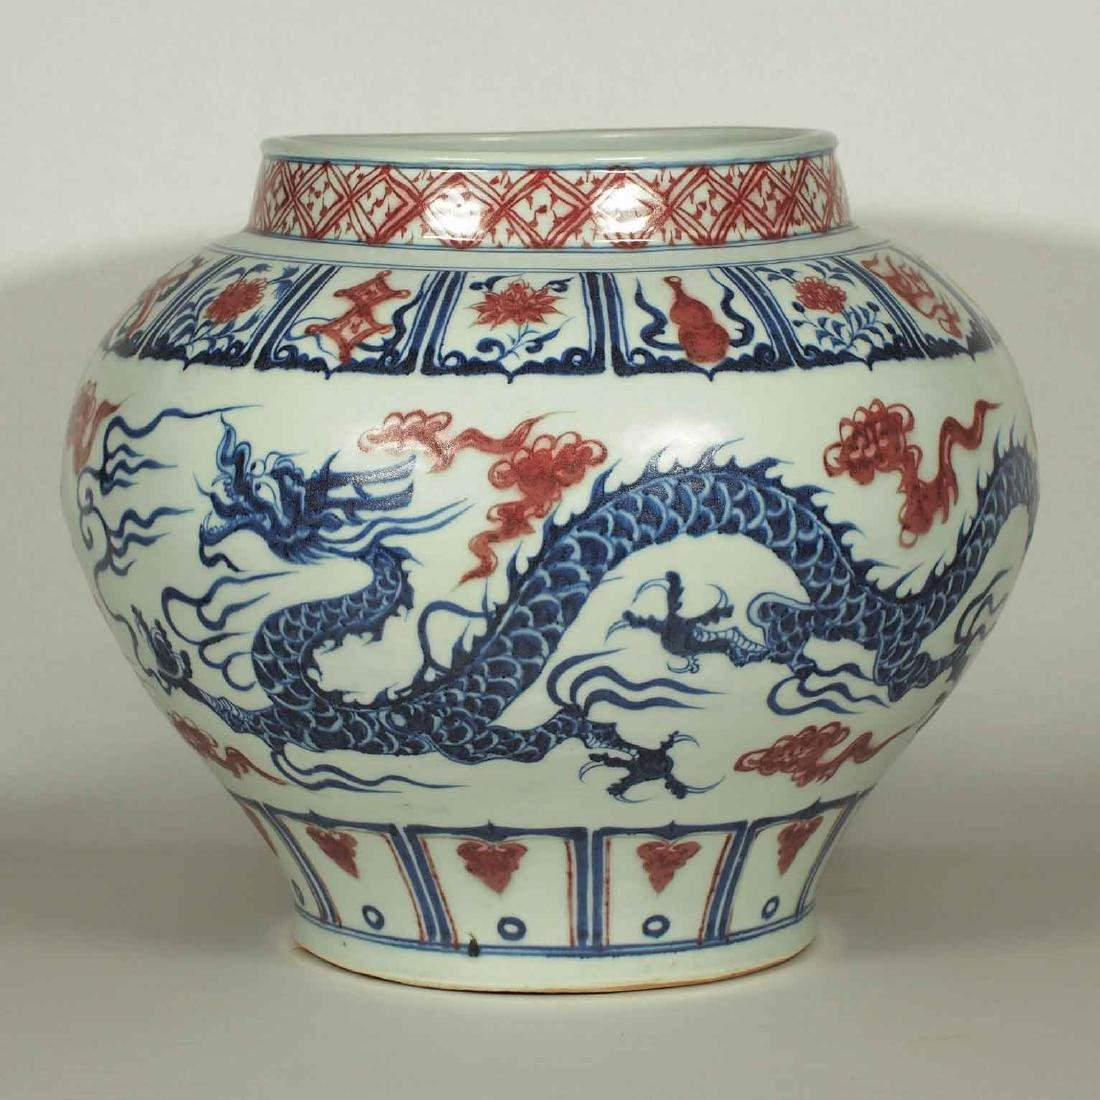 Jar with Dragon Design, Yuan Dynasty